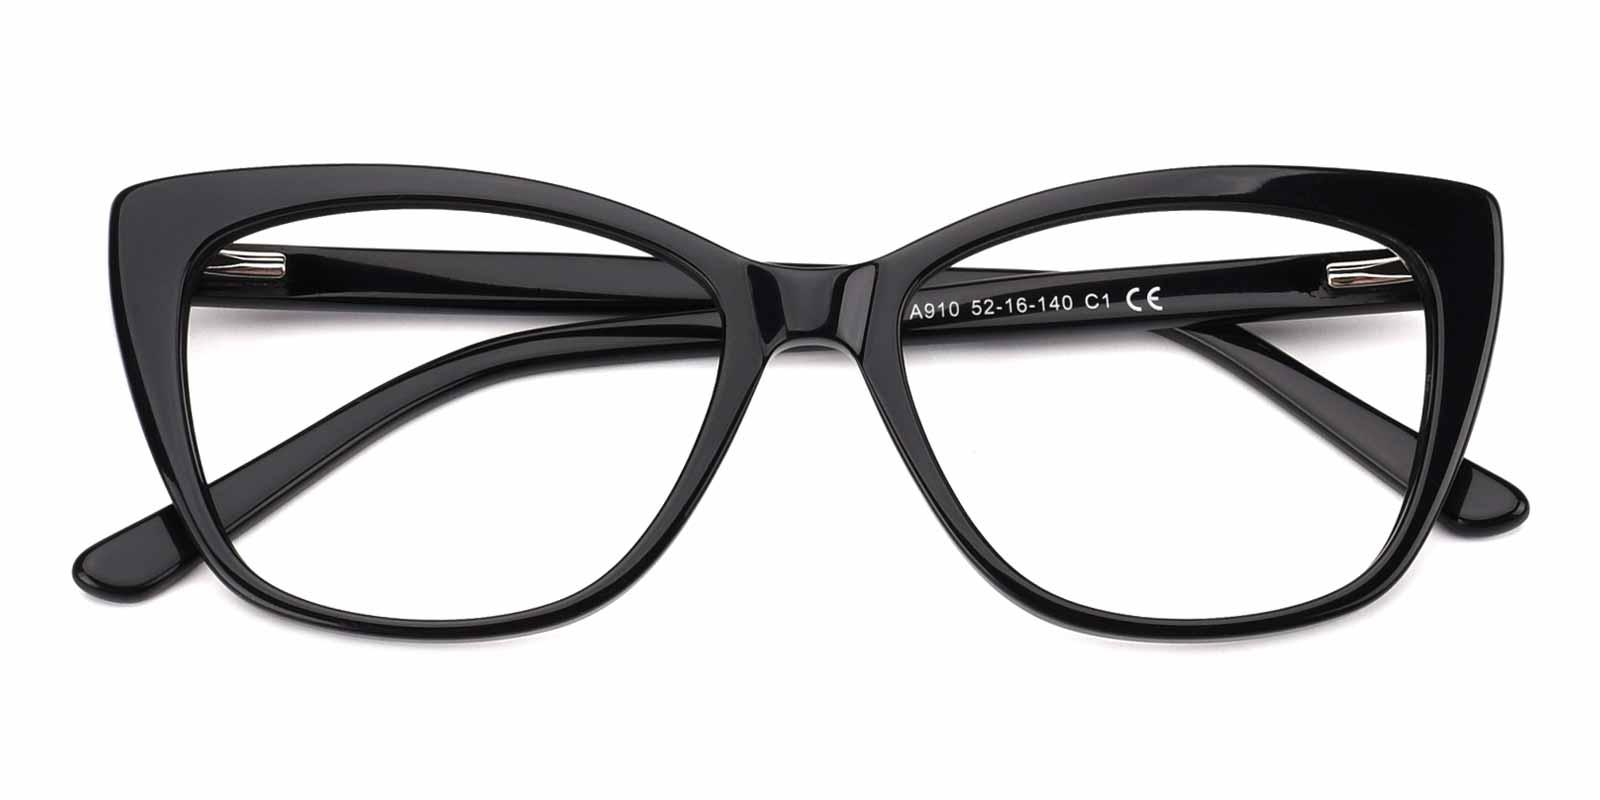 Kiko-Black-Cat-Acetate-Eyeglasses-detail